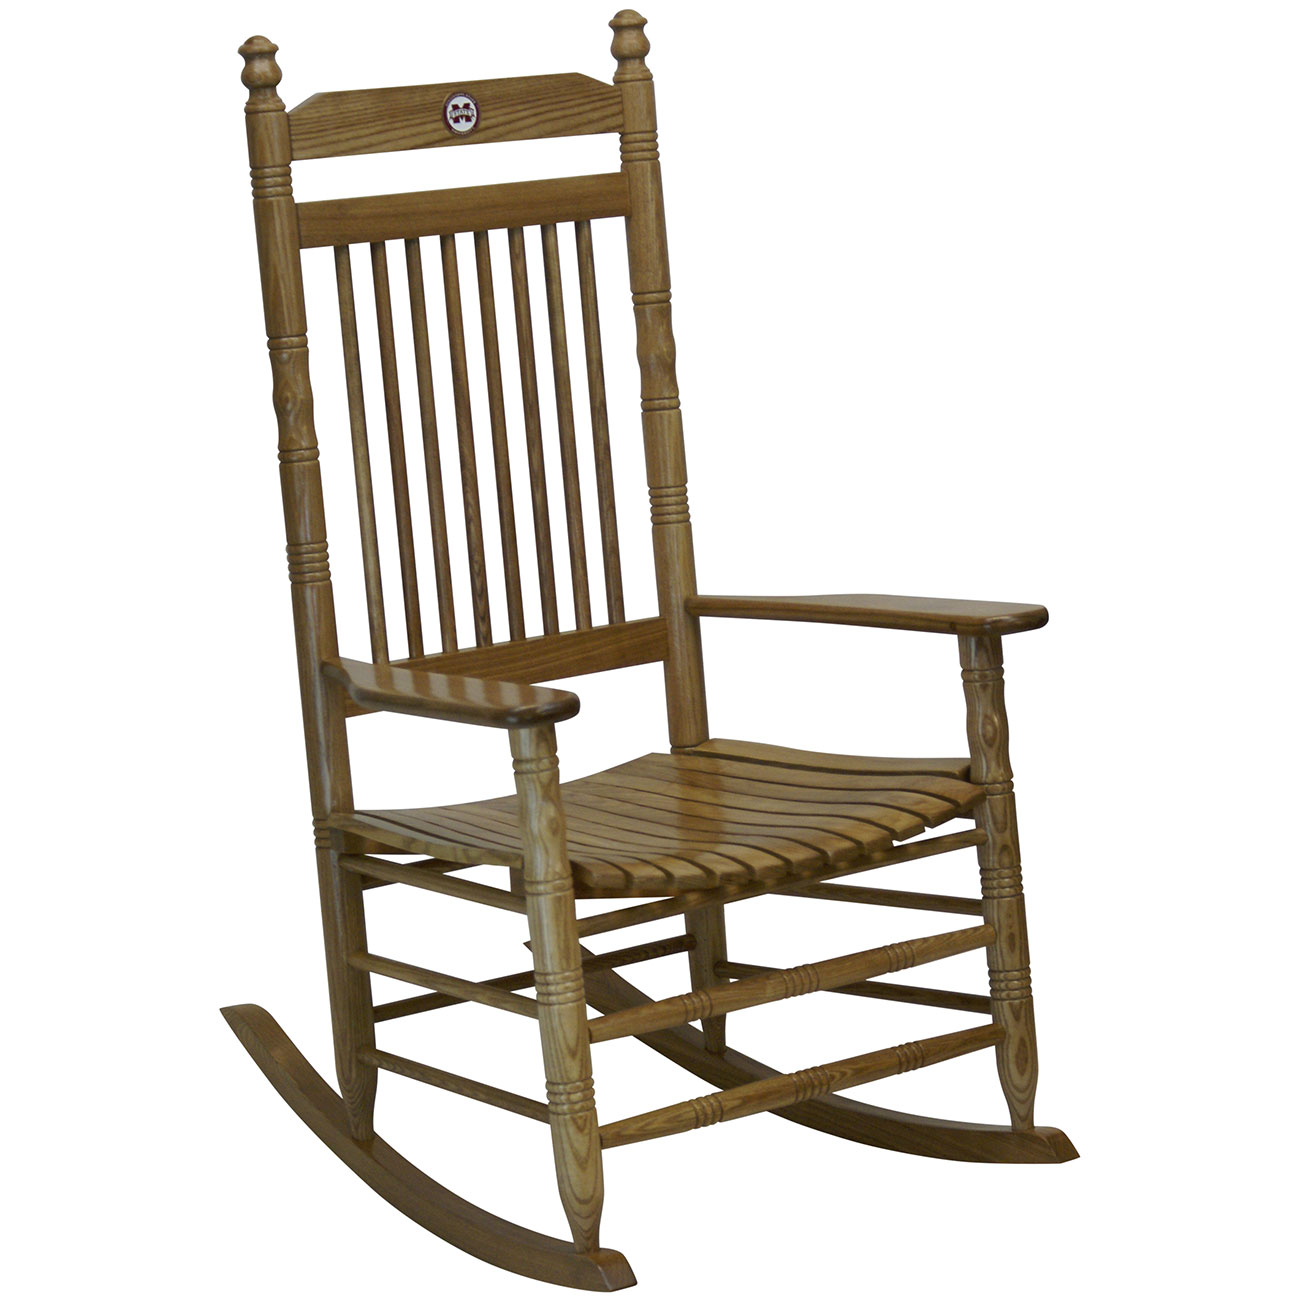 Hardwood Rocking Chair   Mississippi StateHardwood Rocking Chair    Mississippi State ...